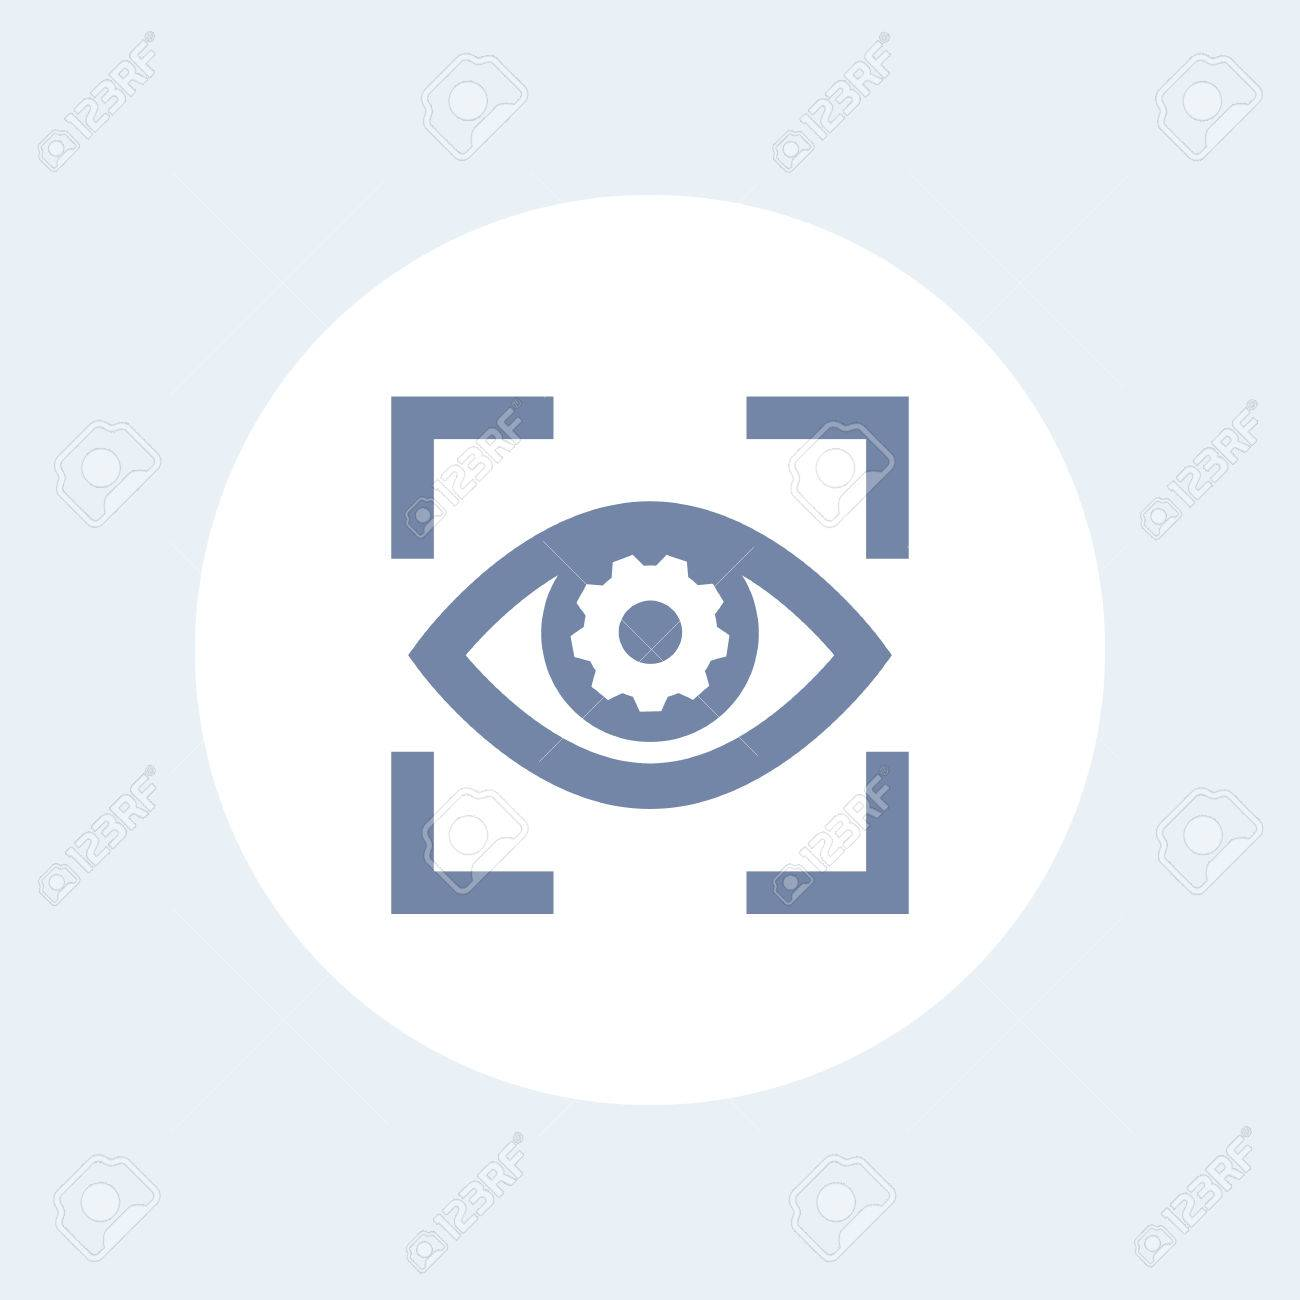 eye with gear icon isolated on white, retina scanning, biometric recognition symbol - 74731464